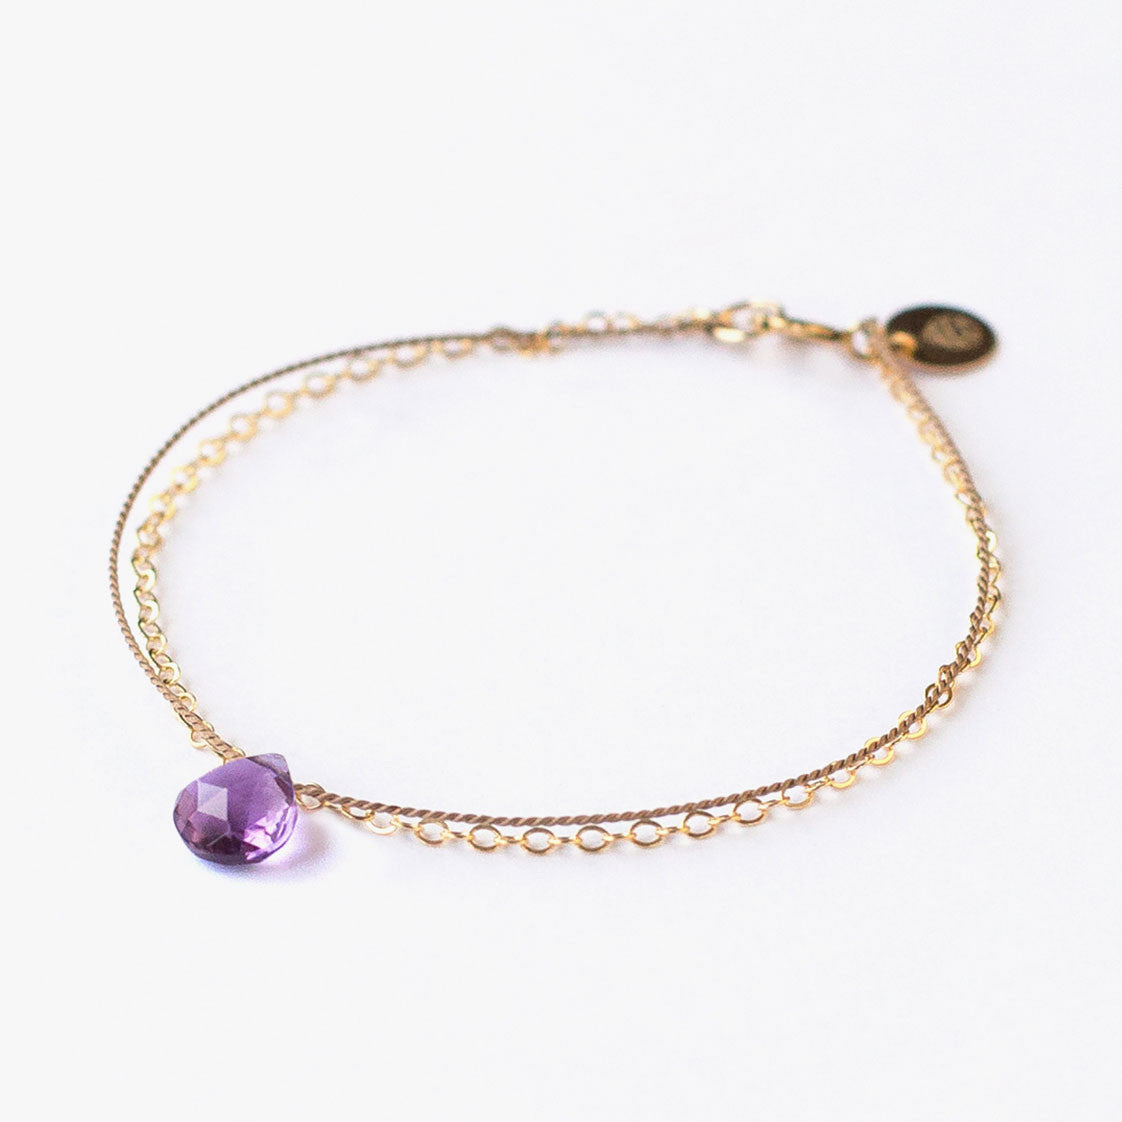 A delicate 14k gold filled Wanderlust Life chain and silk cord purple amethyst semi precious gemstone bracelet